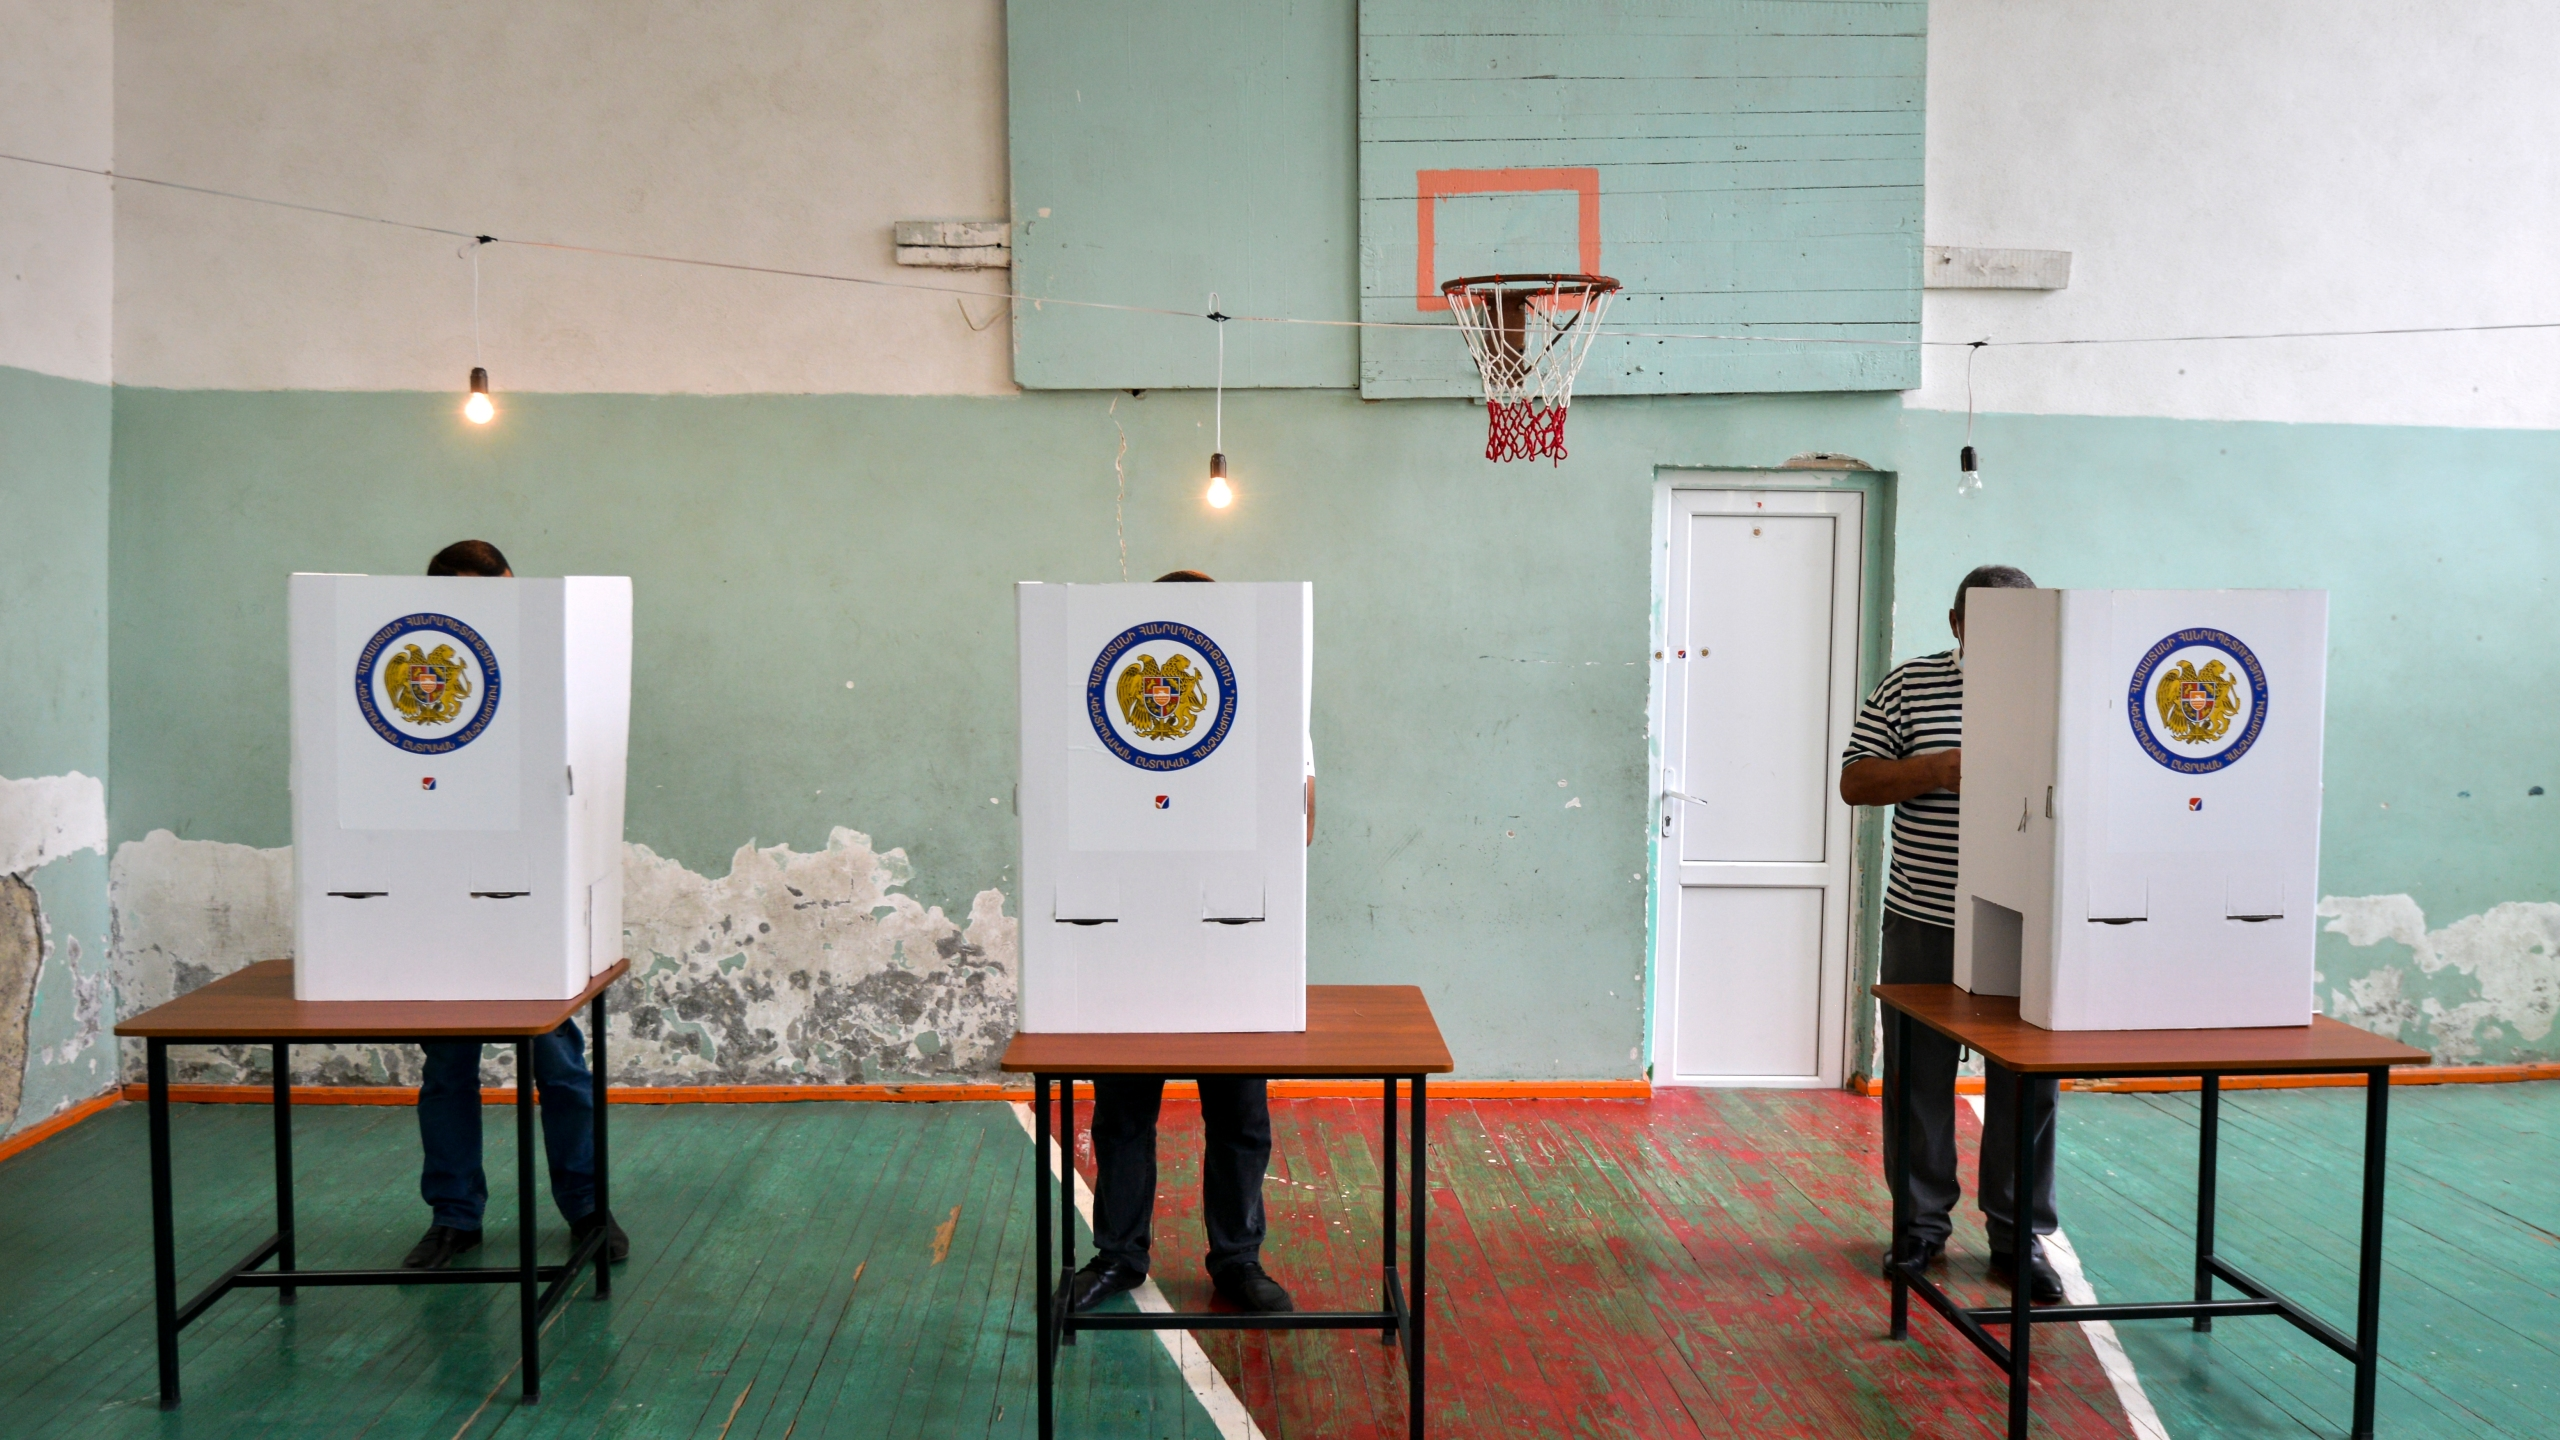 Voters read their ballots at a polling station in a school's sport hall during a parliamentary elections in Yerevan, Armenia, Sunday, June 20, 2021. (Karo Sahakyan/PAN Photo via AP)